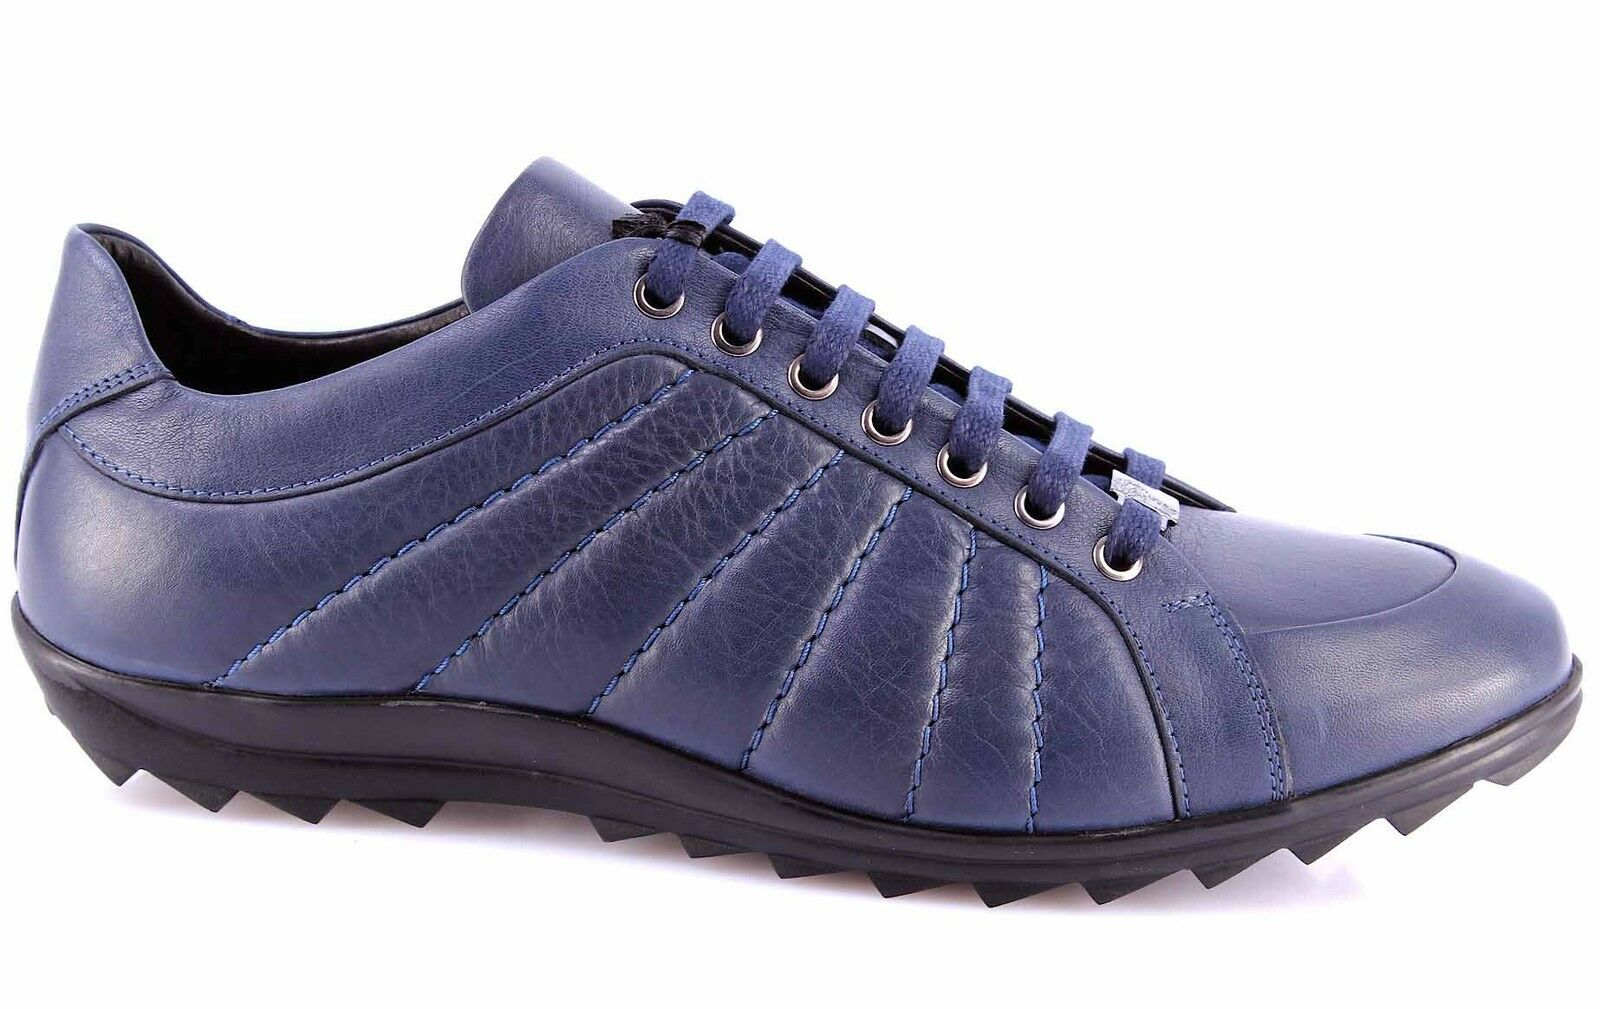 shoes men Sneakers VERSACE COLLECTION Cuir blue Made in  Exclusif